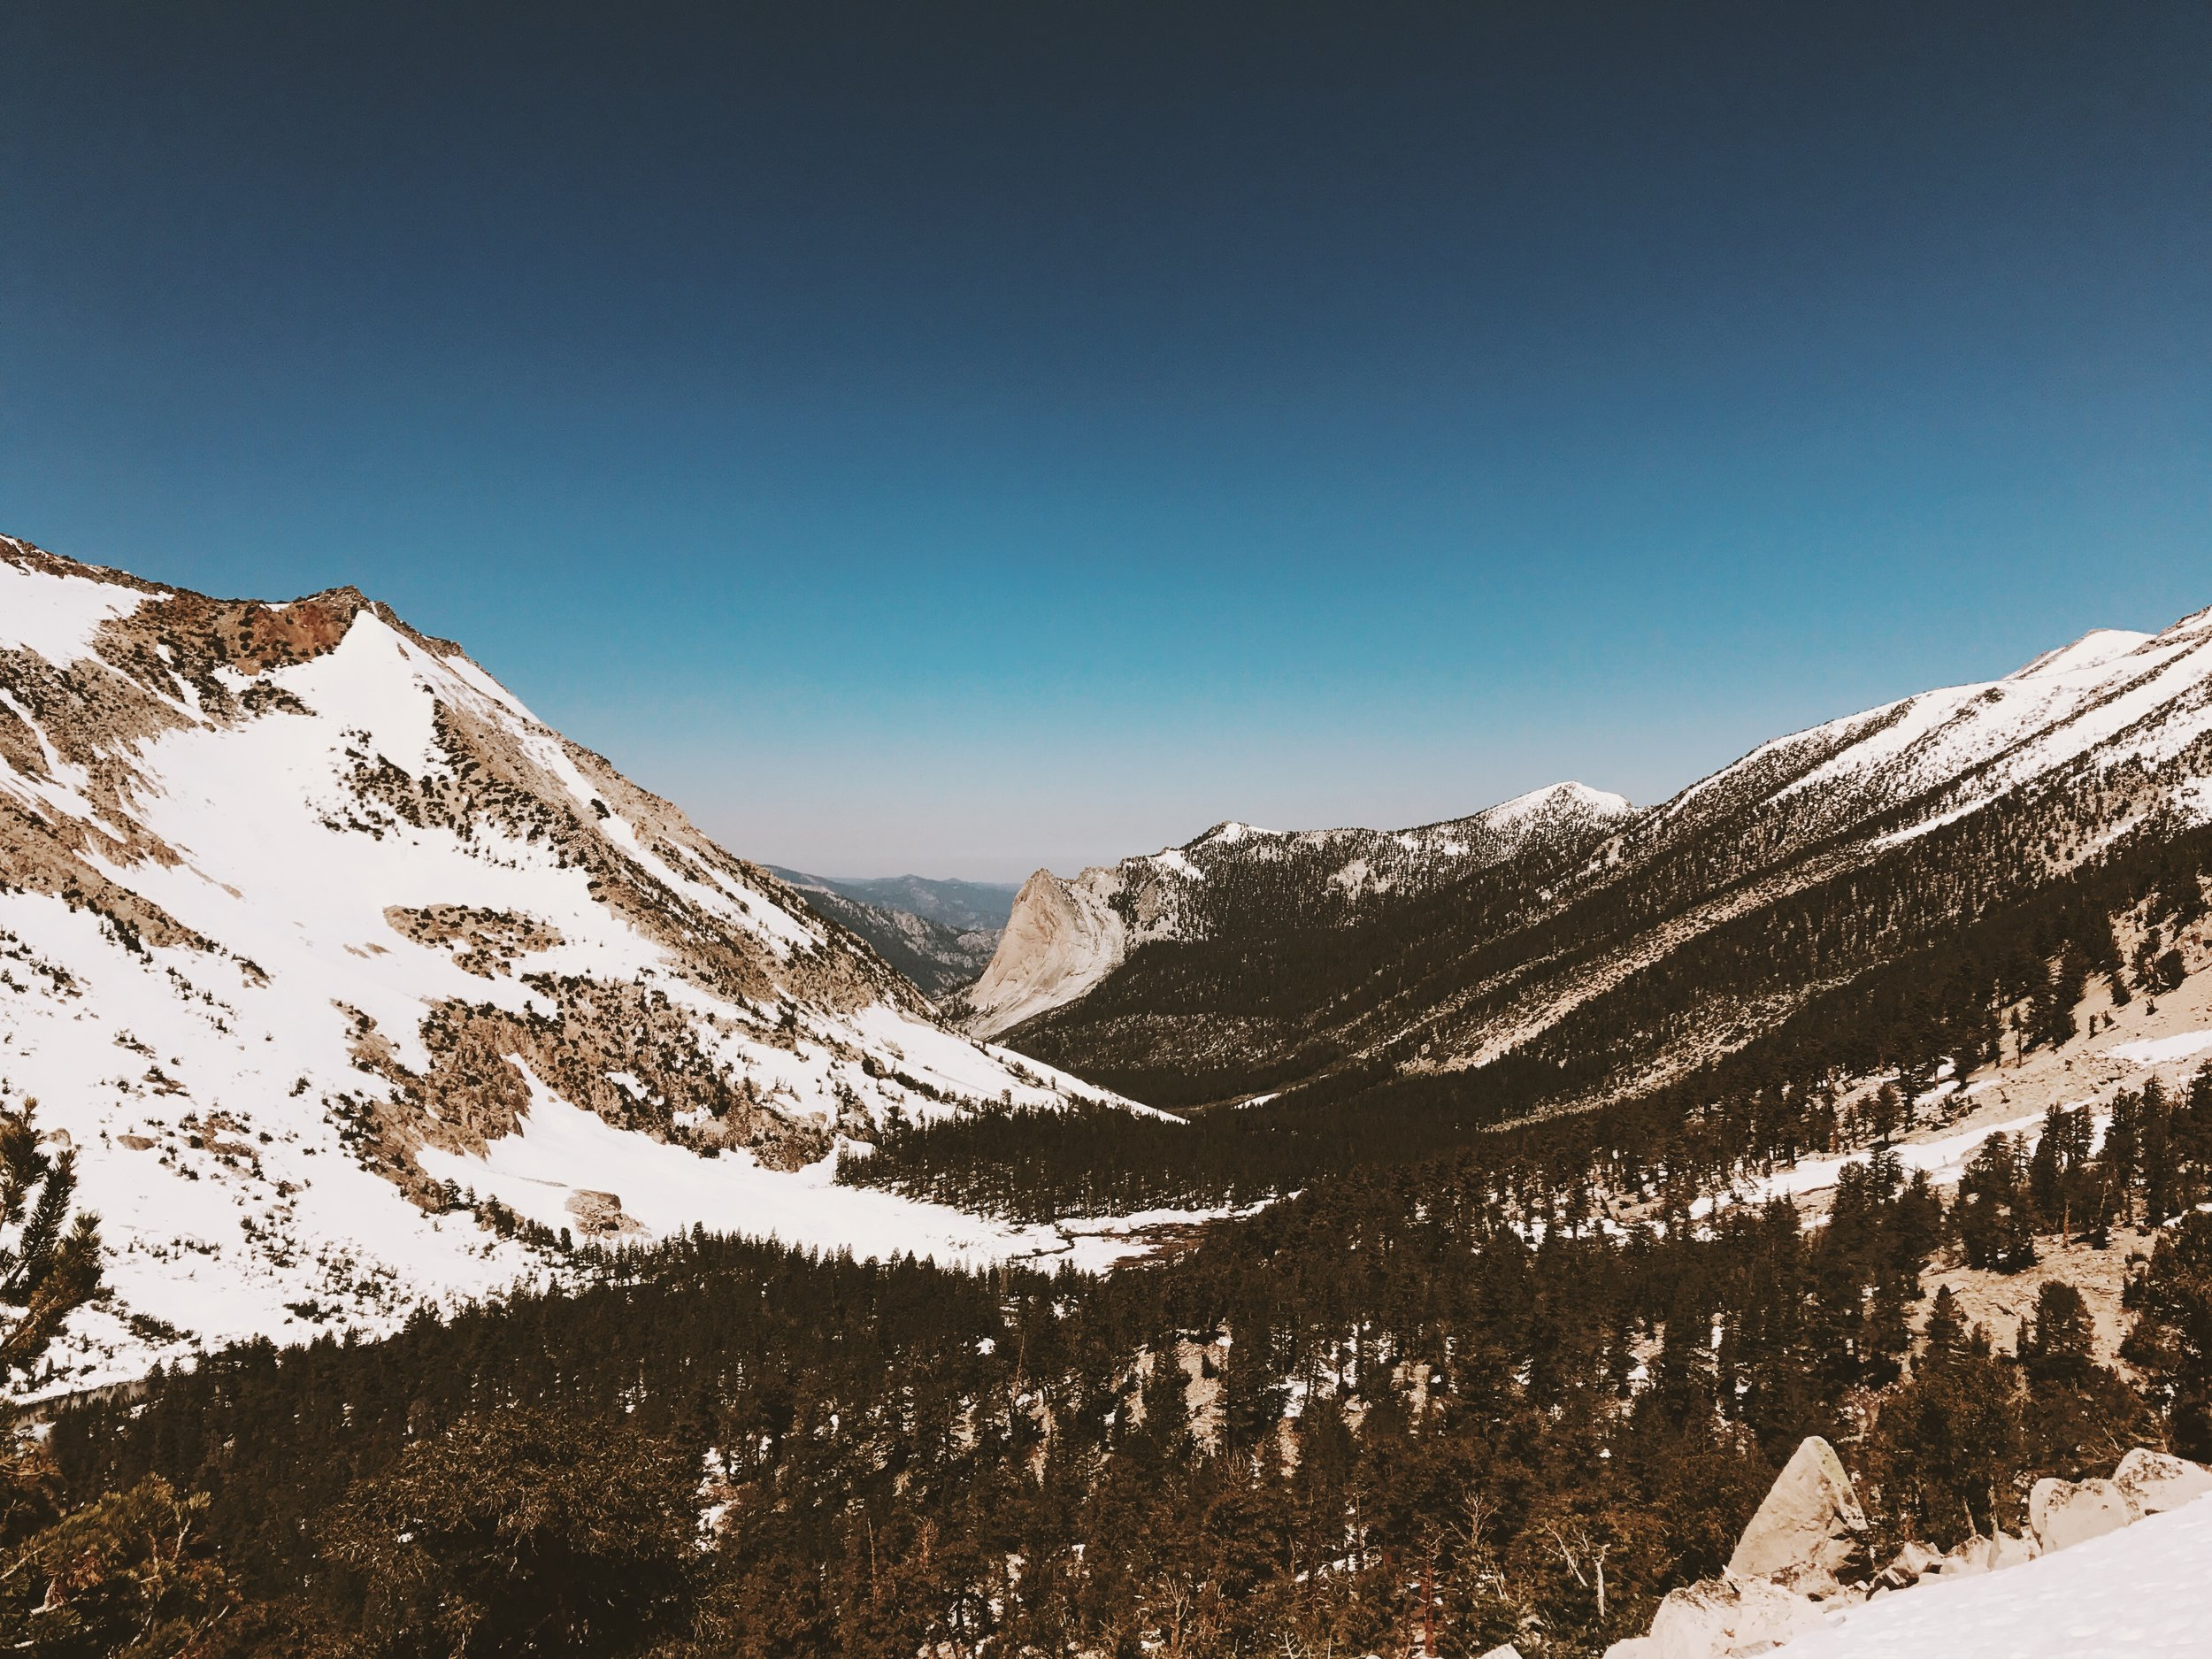 Kearsarge Pass let's you see things